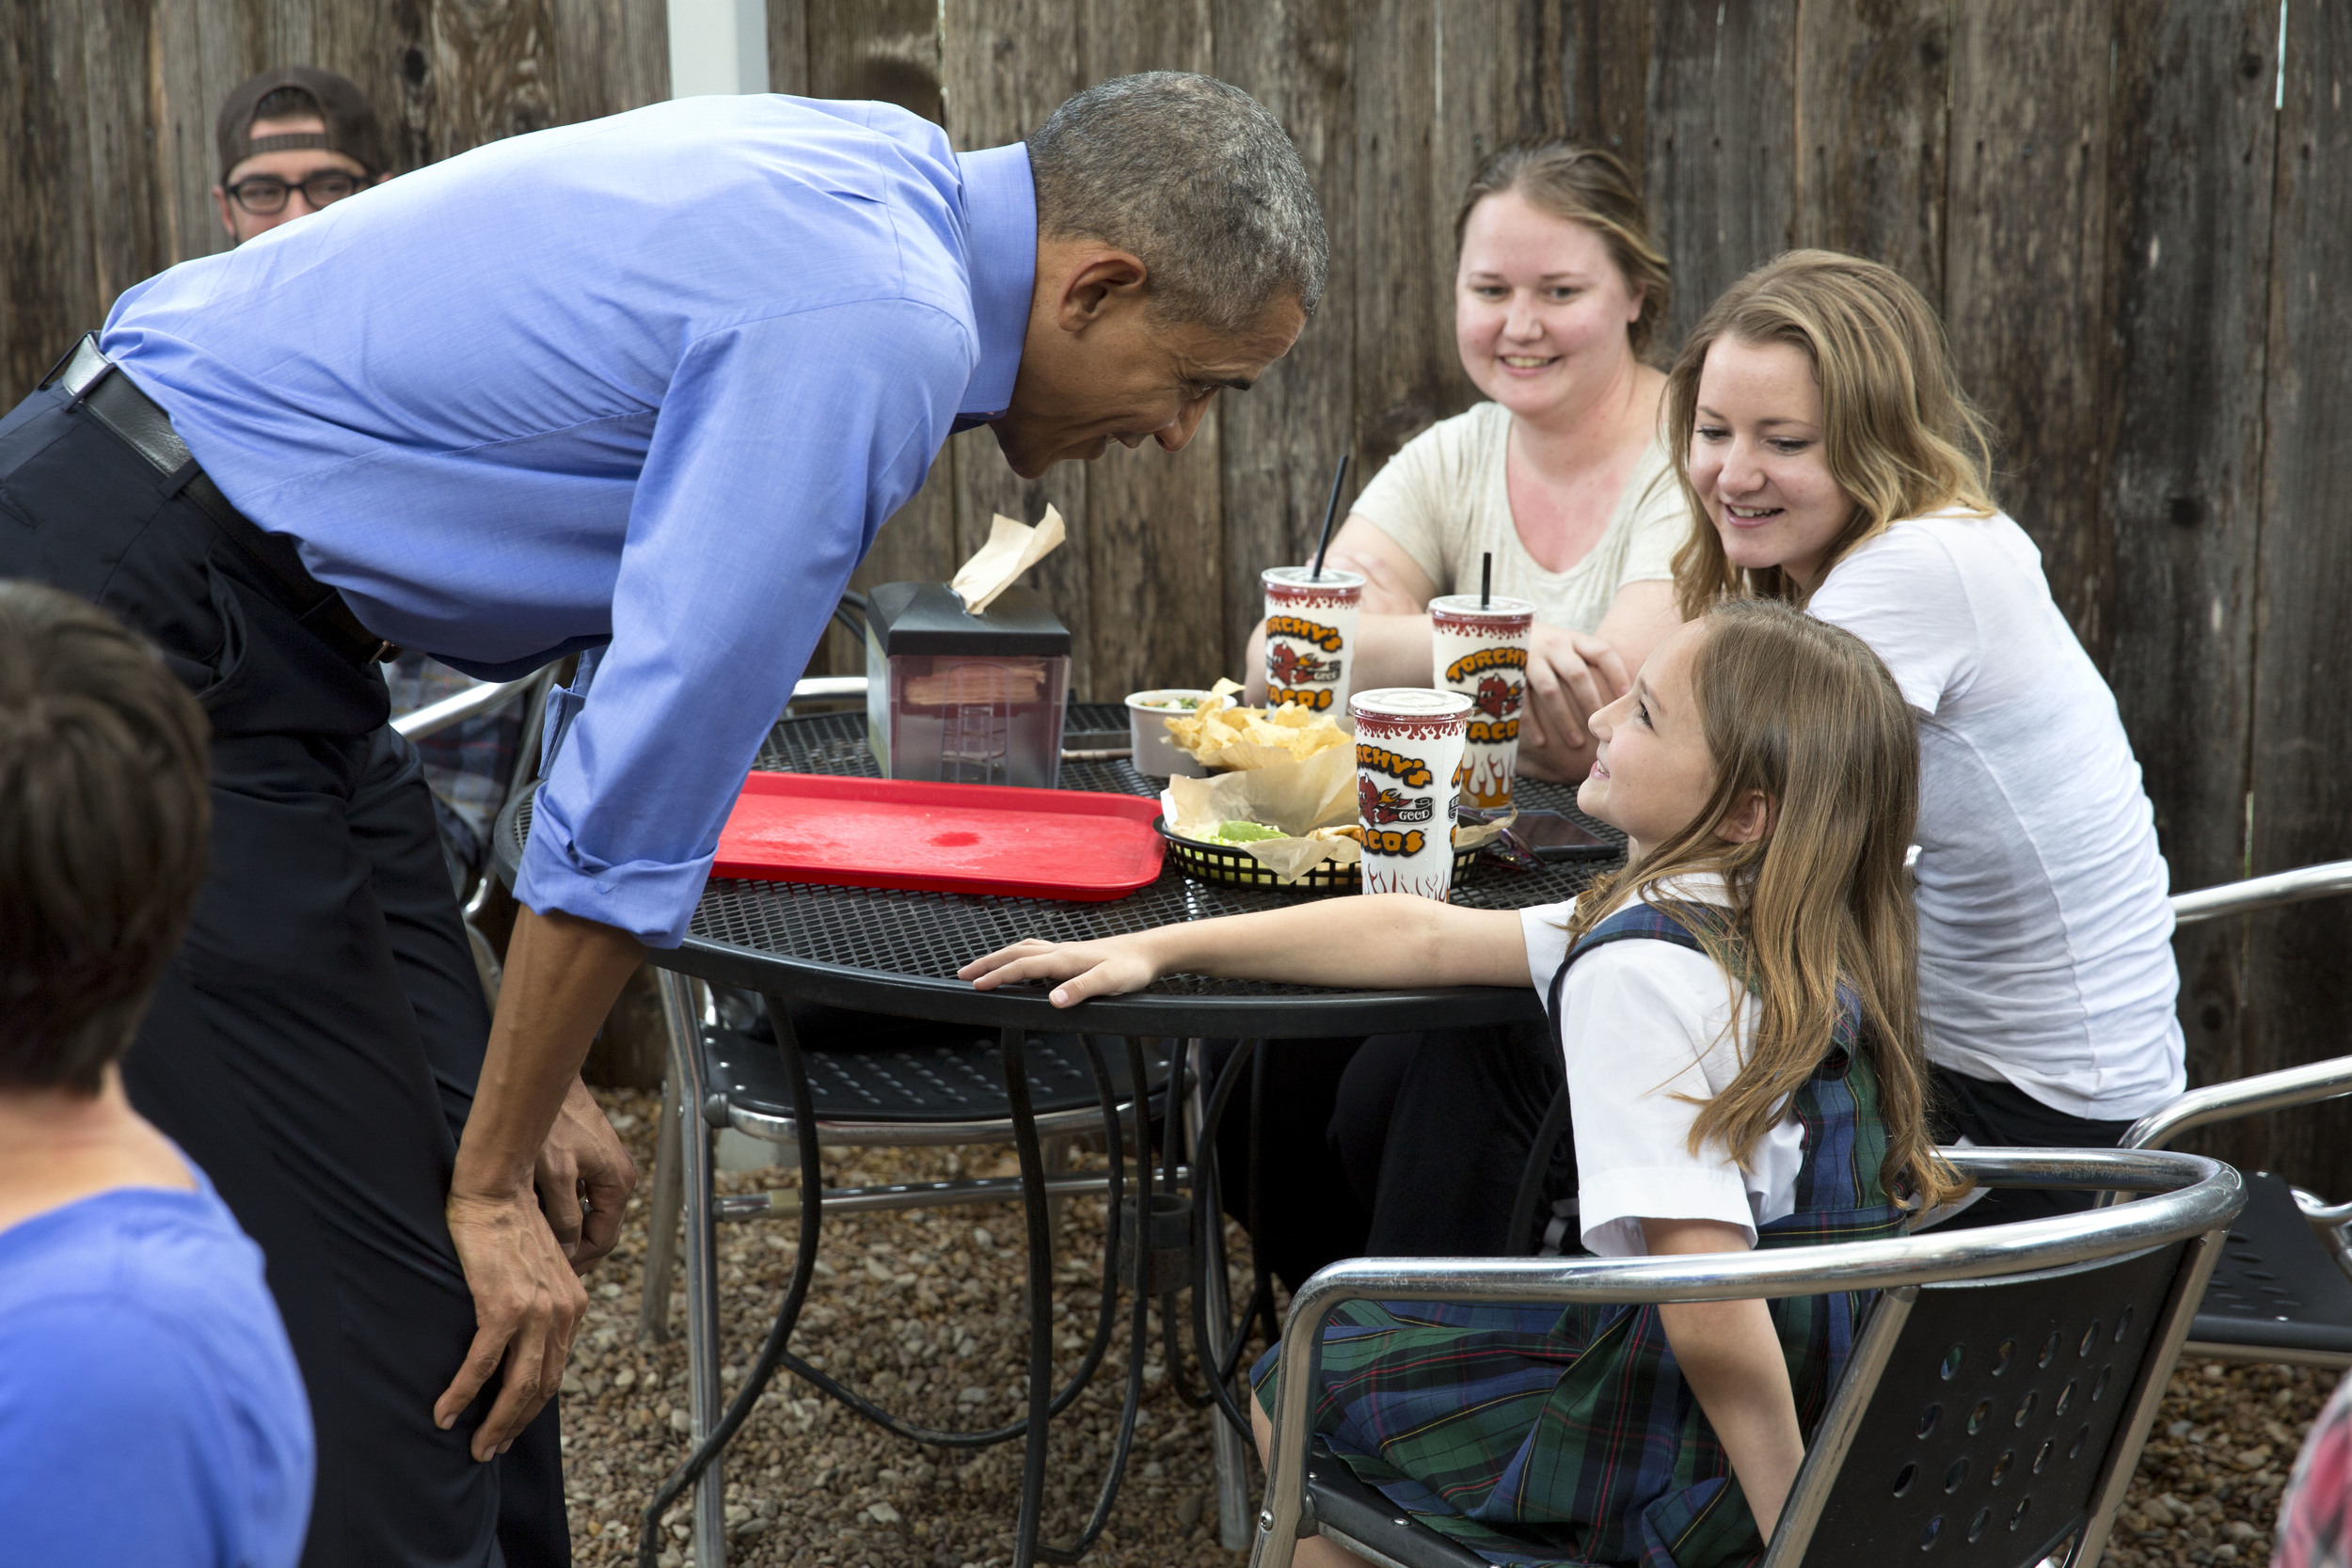 President Barack Obama talks to a young diner at Torchy's Tacos in Austin, Tx. - 2016